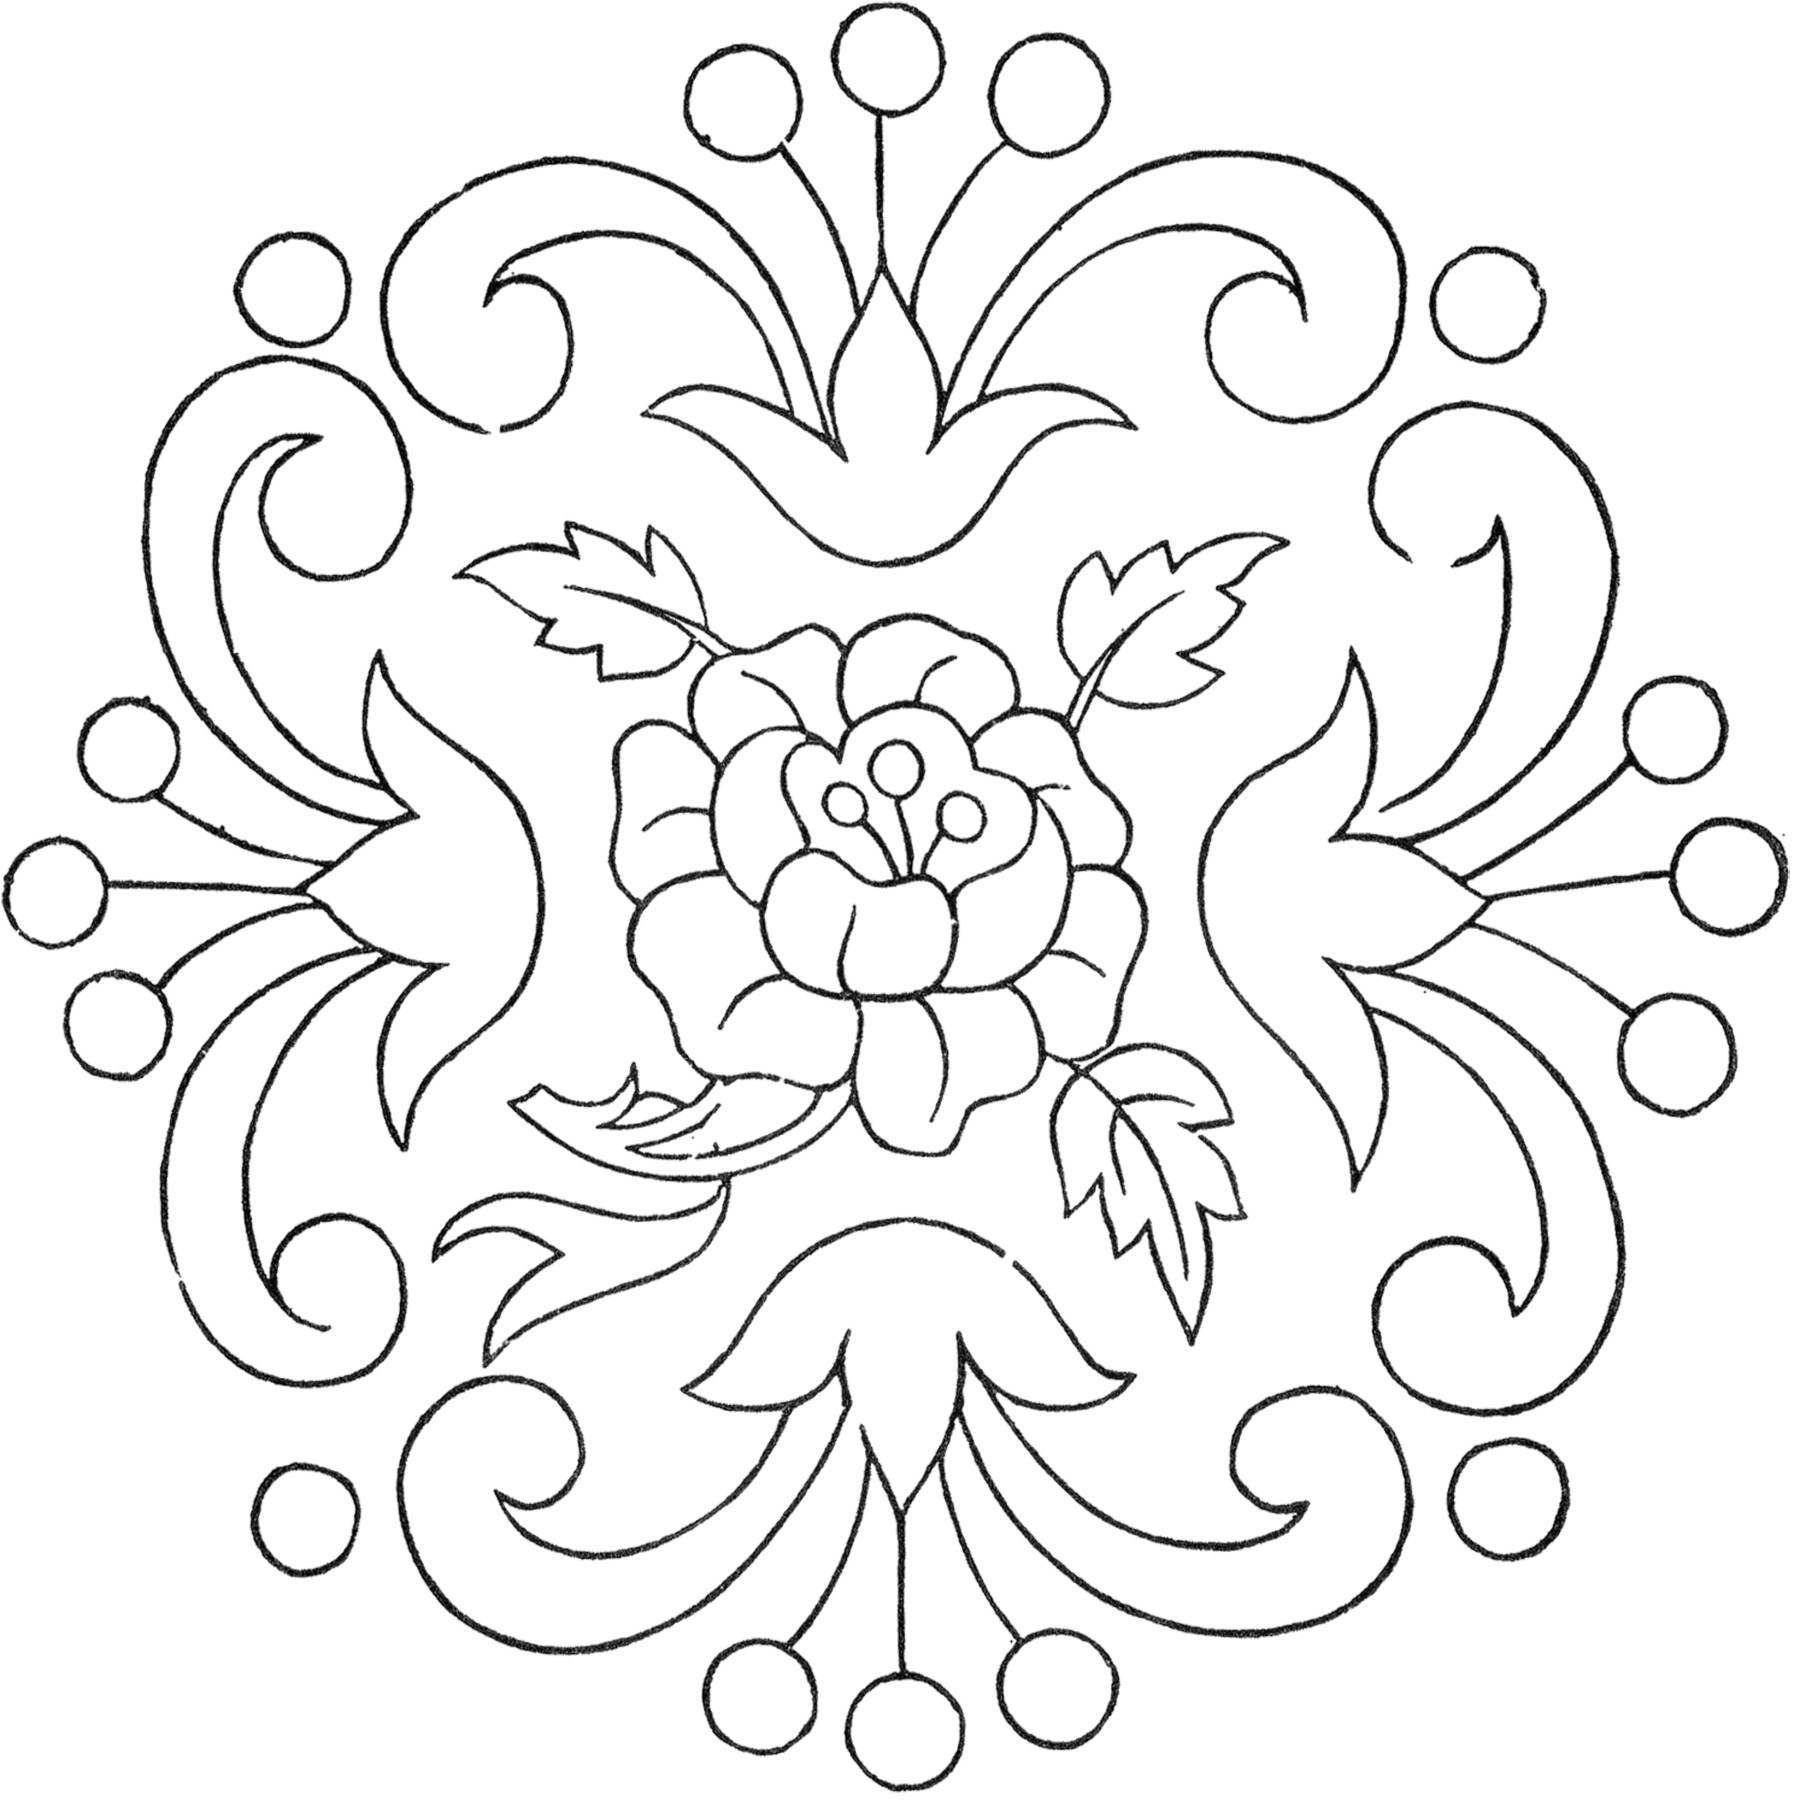 Line Drawing Embroidery : Vintage floral embroidery pattern the graphics fairy